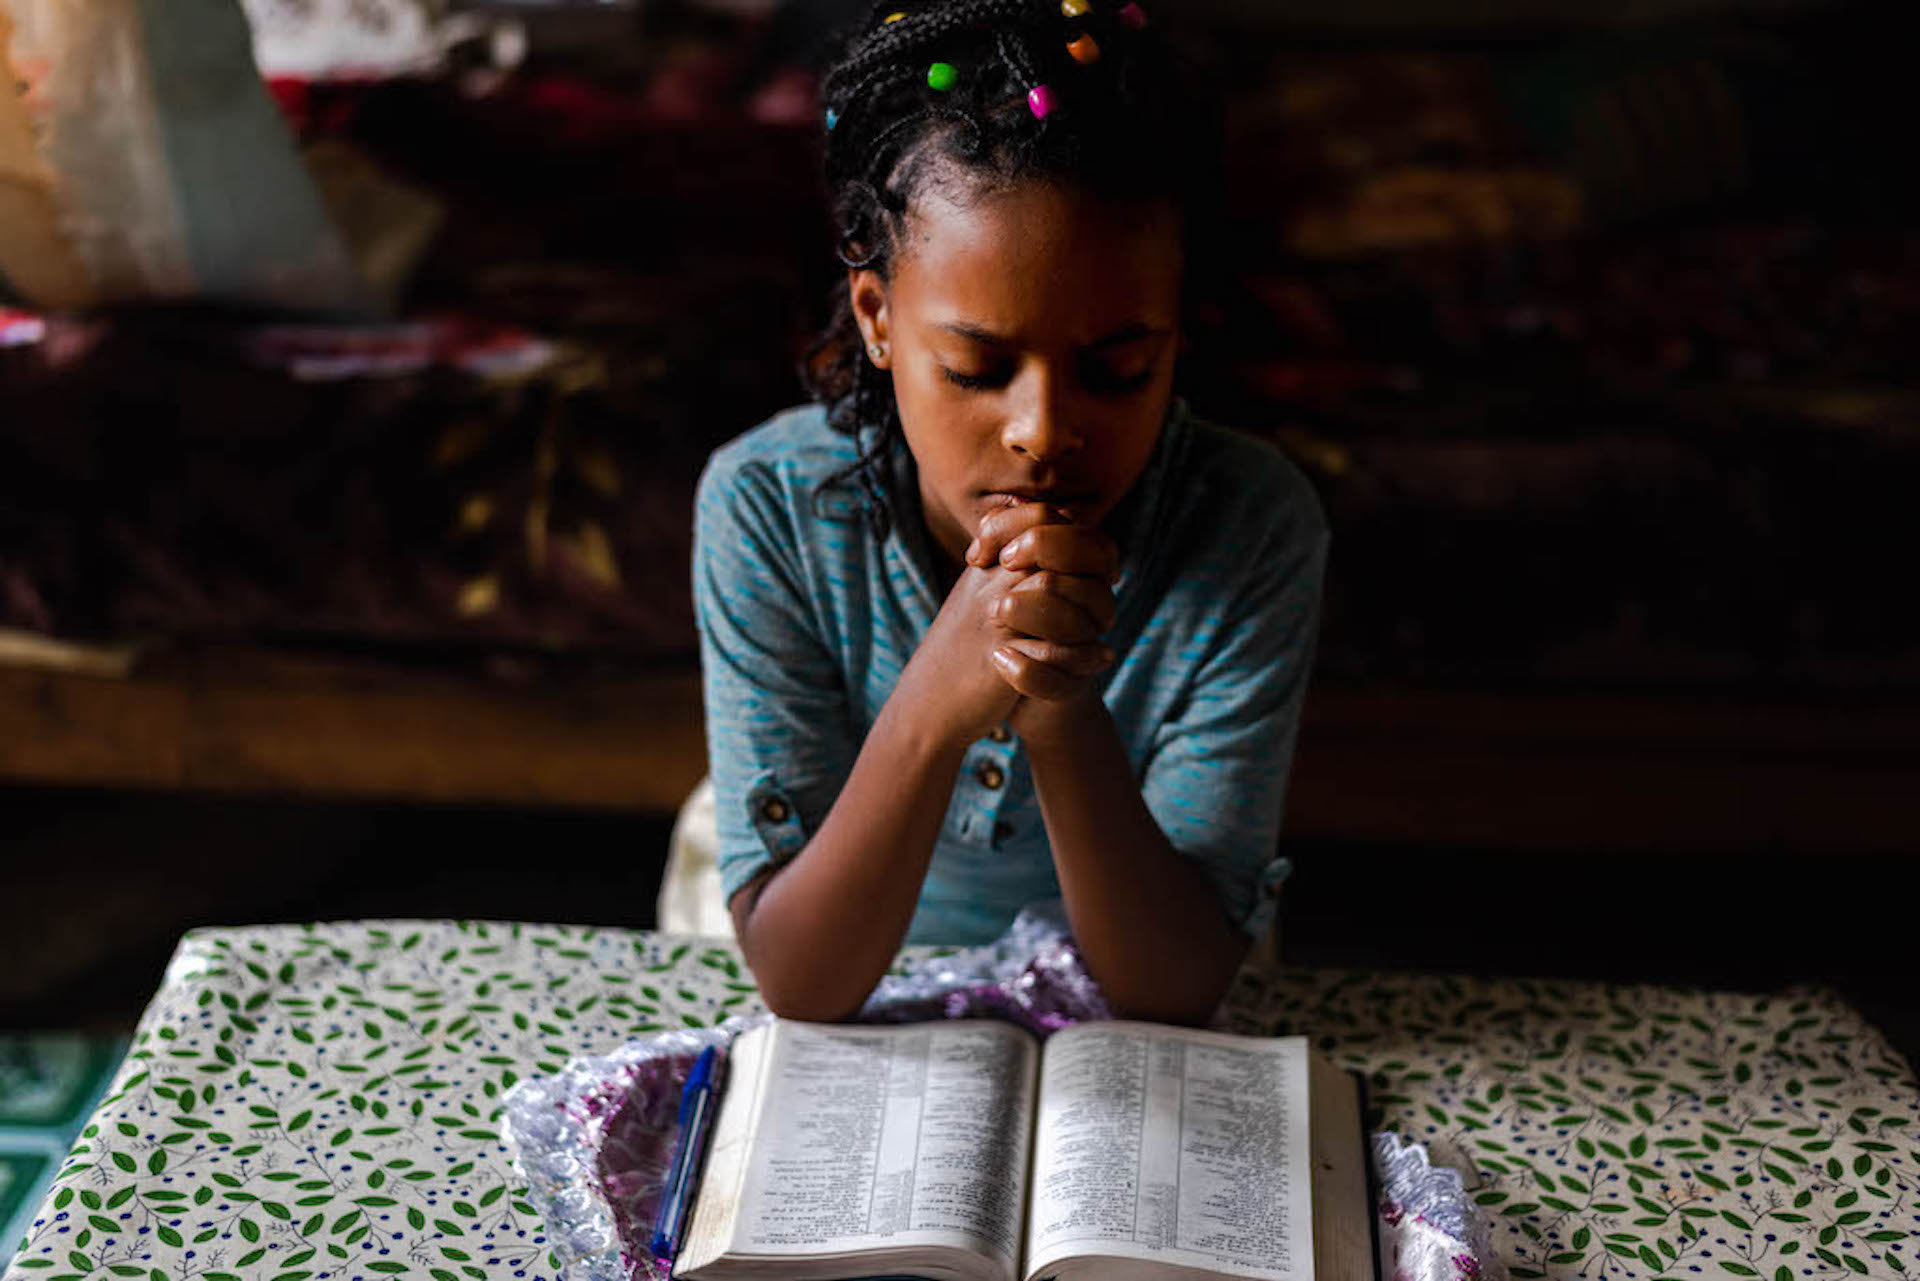 An Ethiopian girl praying with a Bible open on the table in front of her.